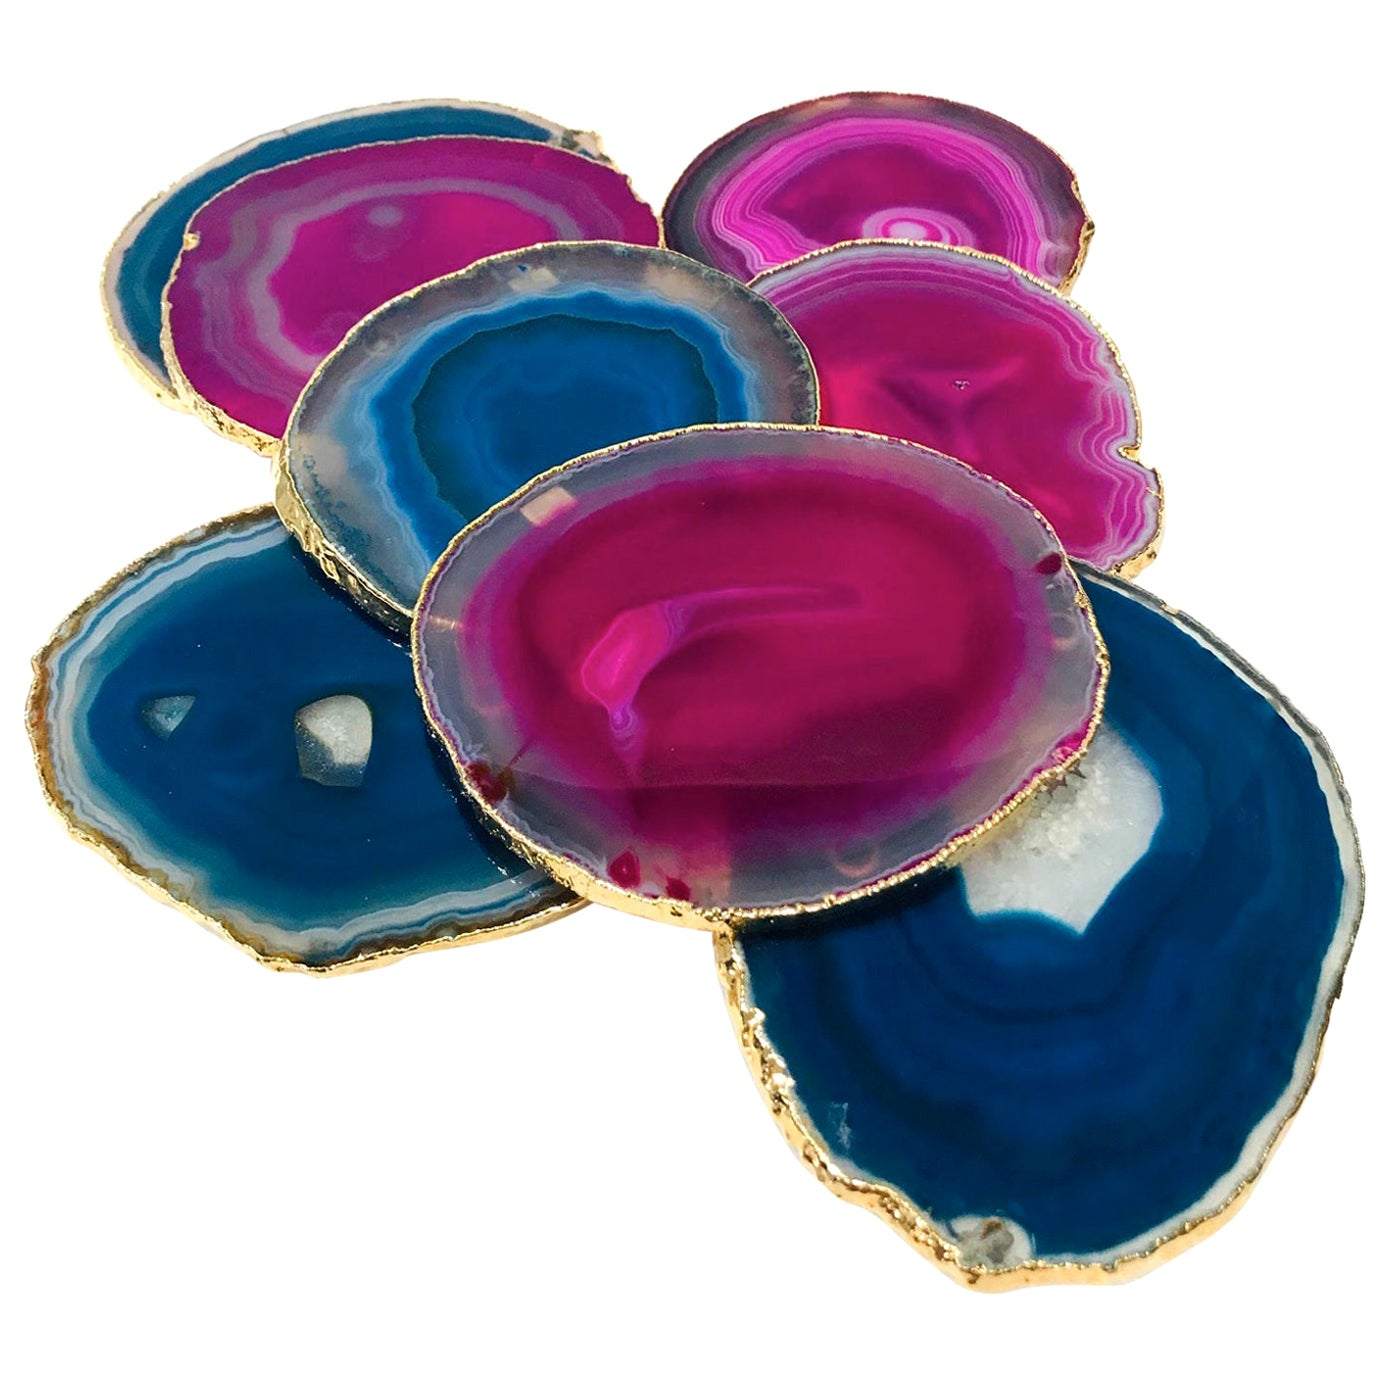 Set/ 8 Semi-Precious Gemstone Coasters in Pink and Turquoise with 24K Gold Trim